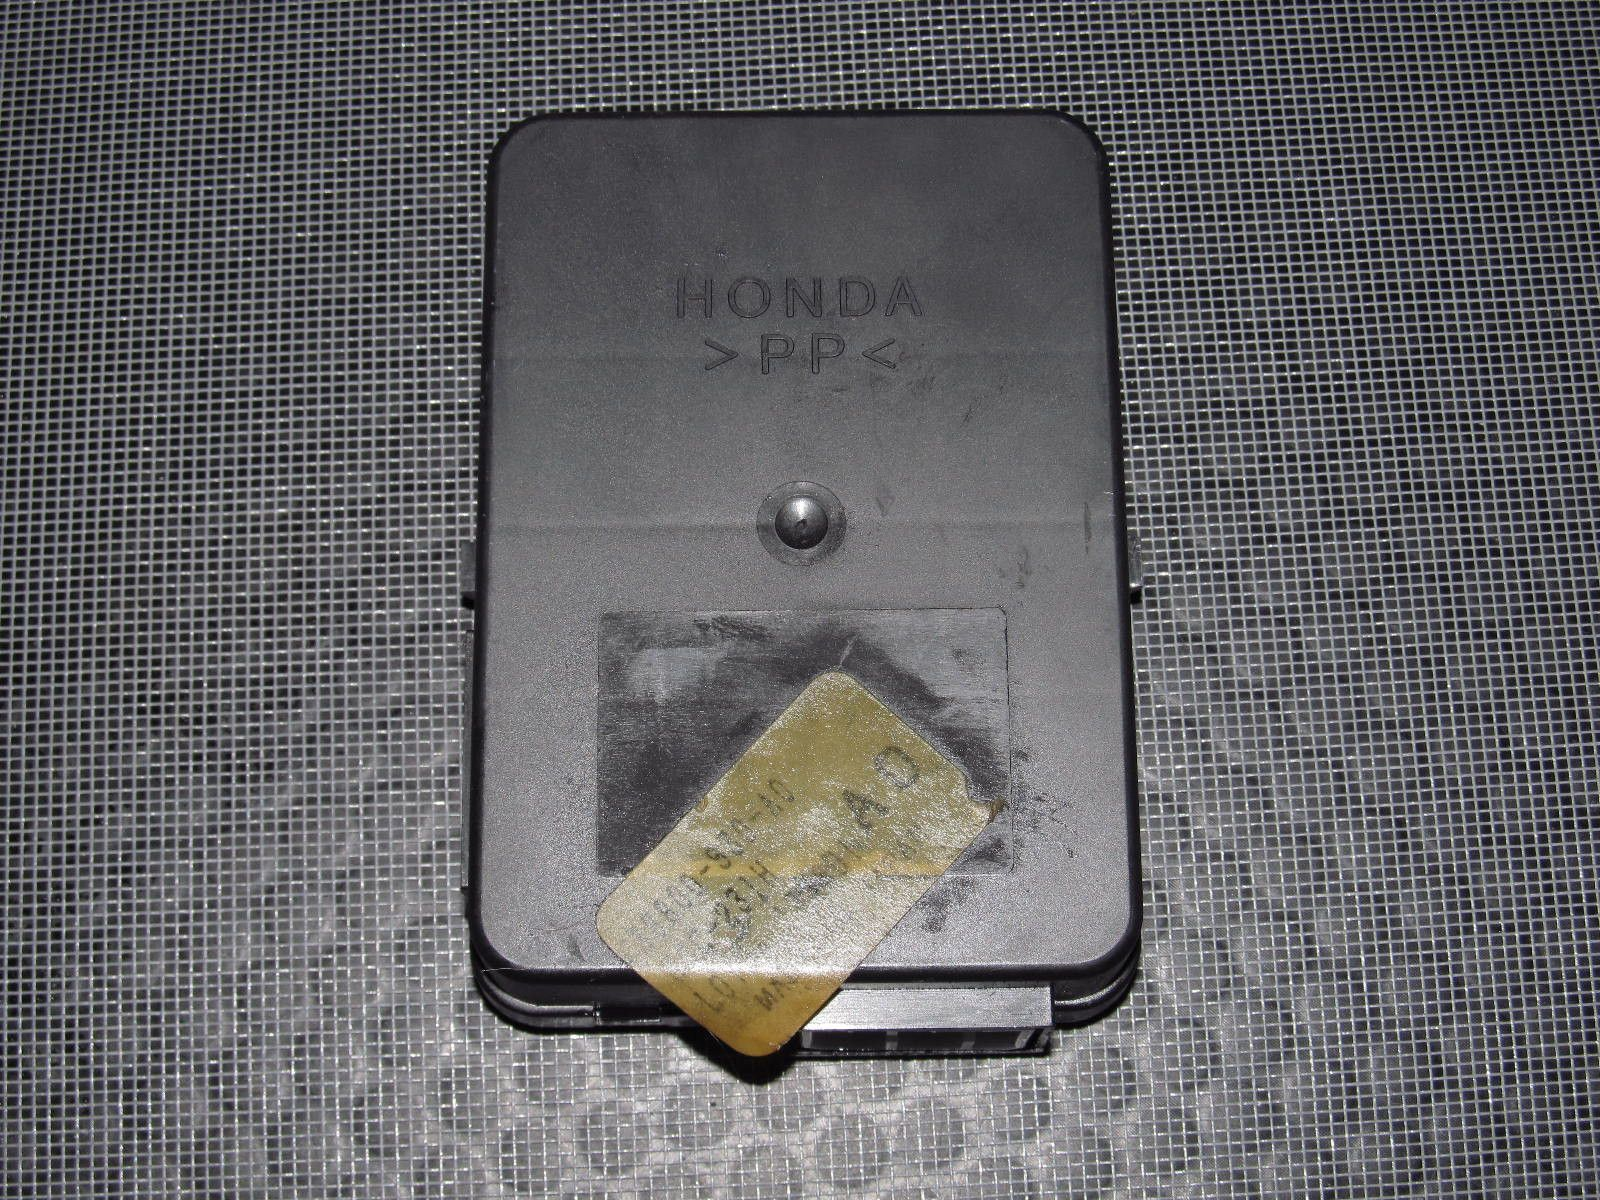 1997 Honda Prelude Fuse Box Wire Data Schema Nissan Sentra Diagram 97 01 Oem 38800 S30 A0 Integration Control Rh Pinterest Co Uk 1993 Location